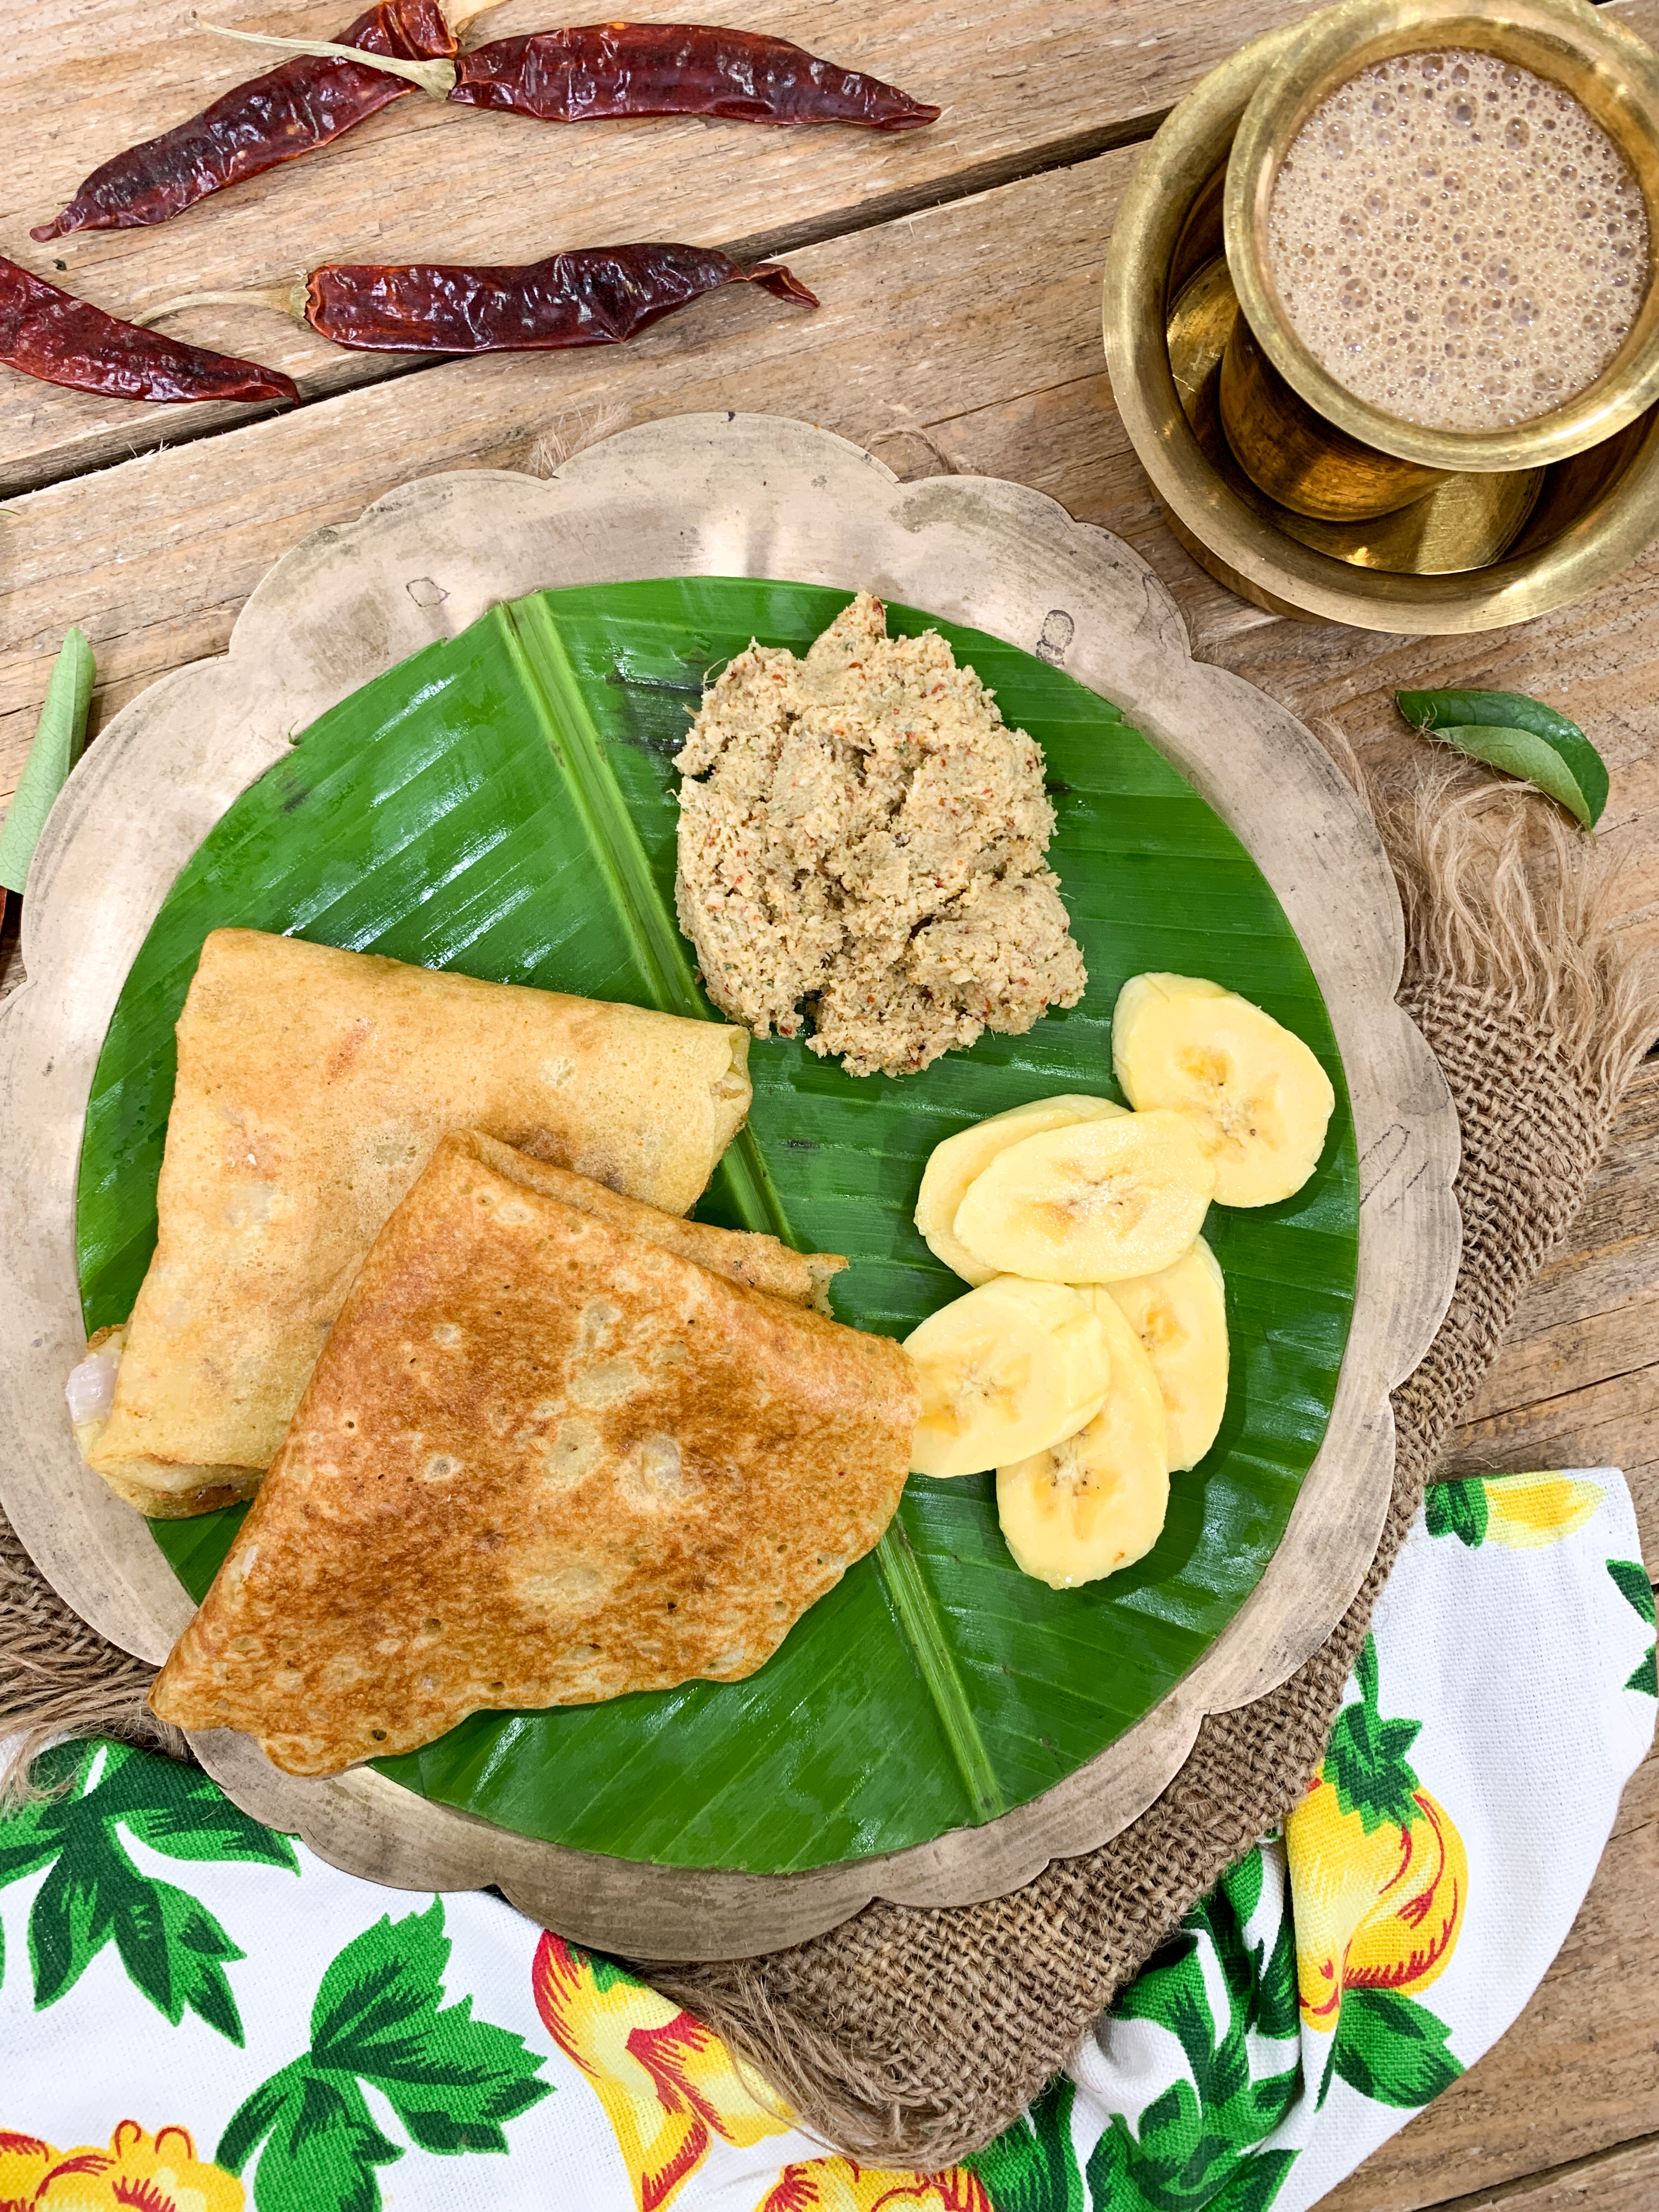 Enjoy A Simple South Indian Breakfast Meal With Adai, Chammanthi Chutney And Filter Coffee